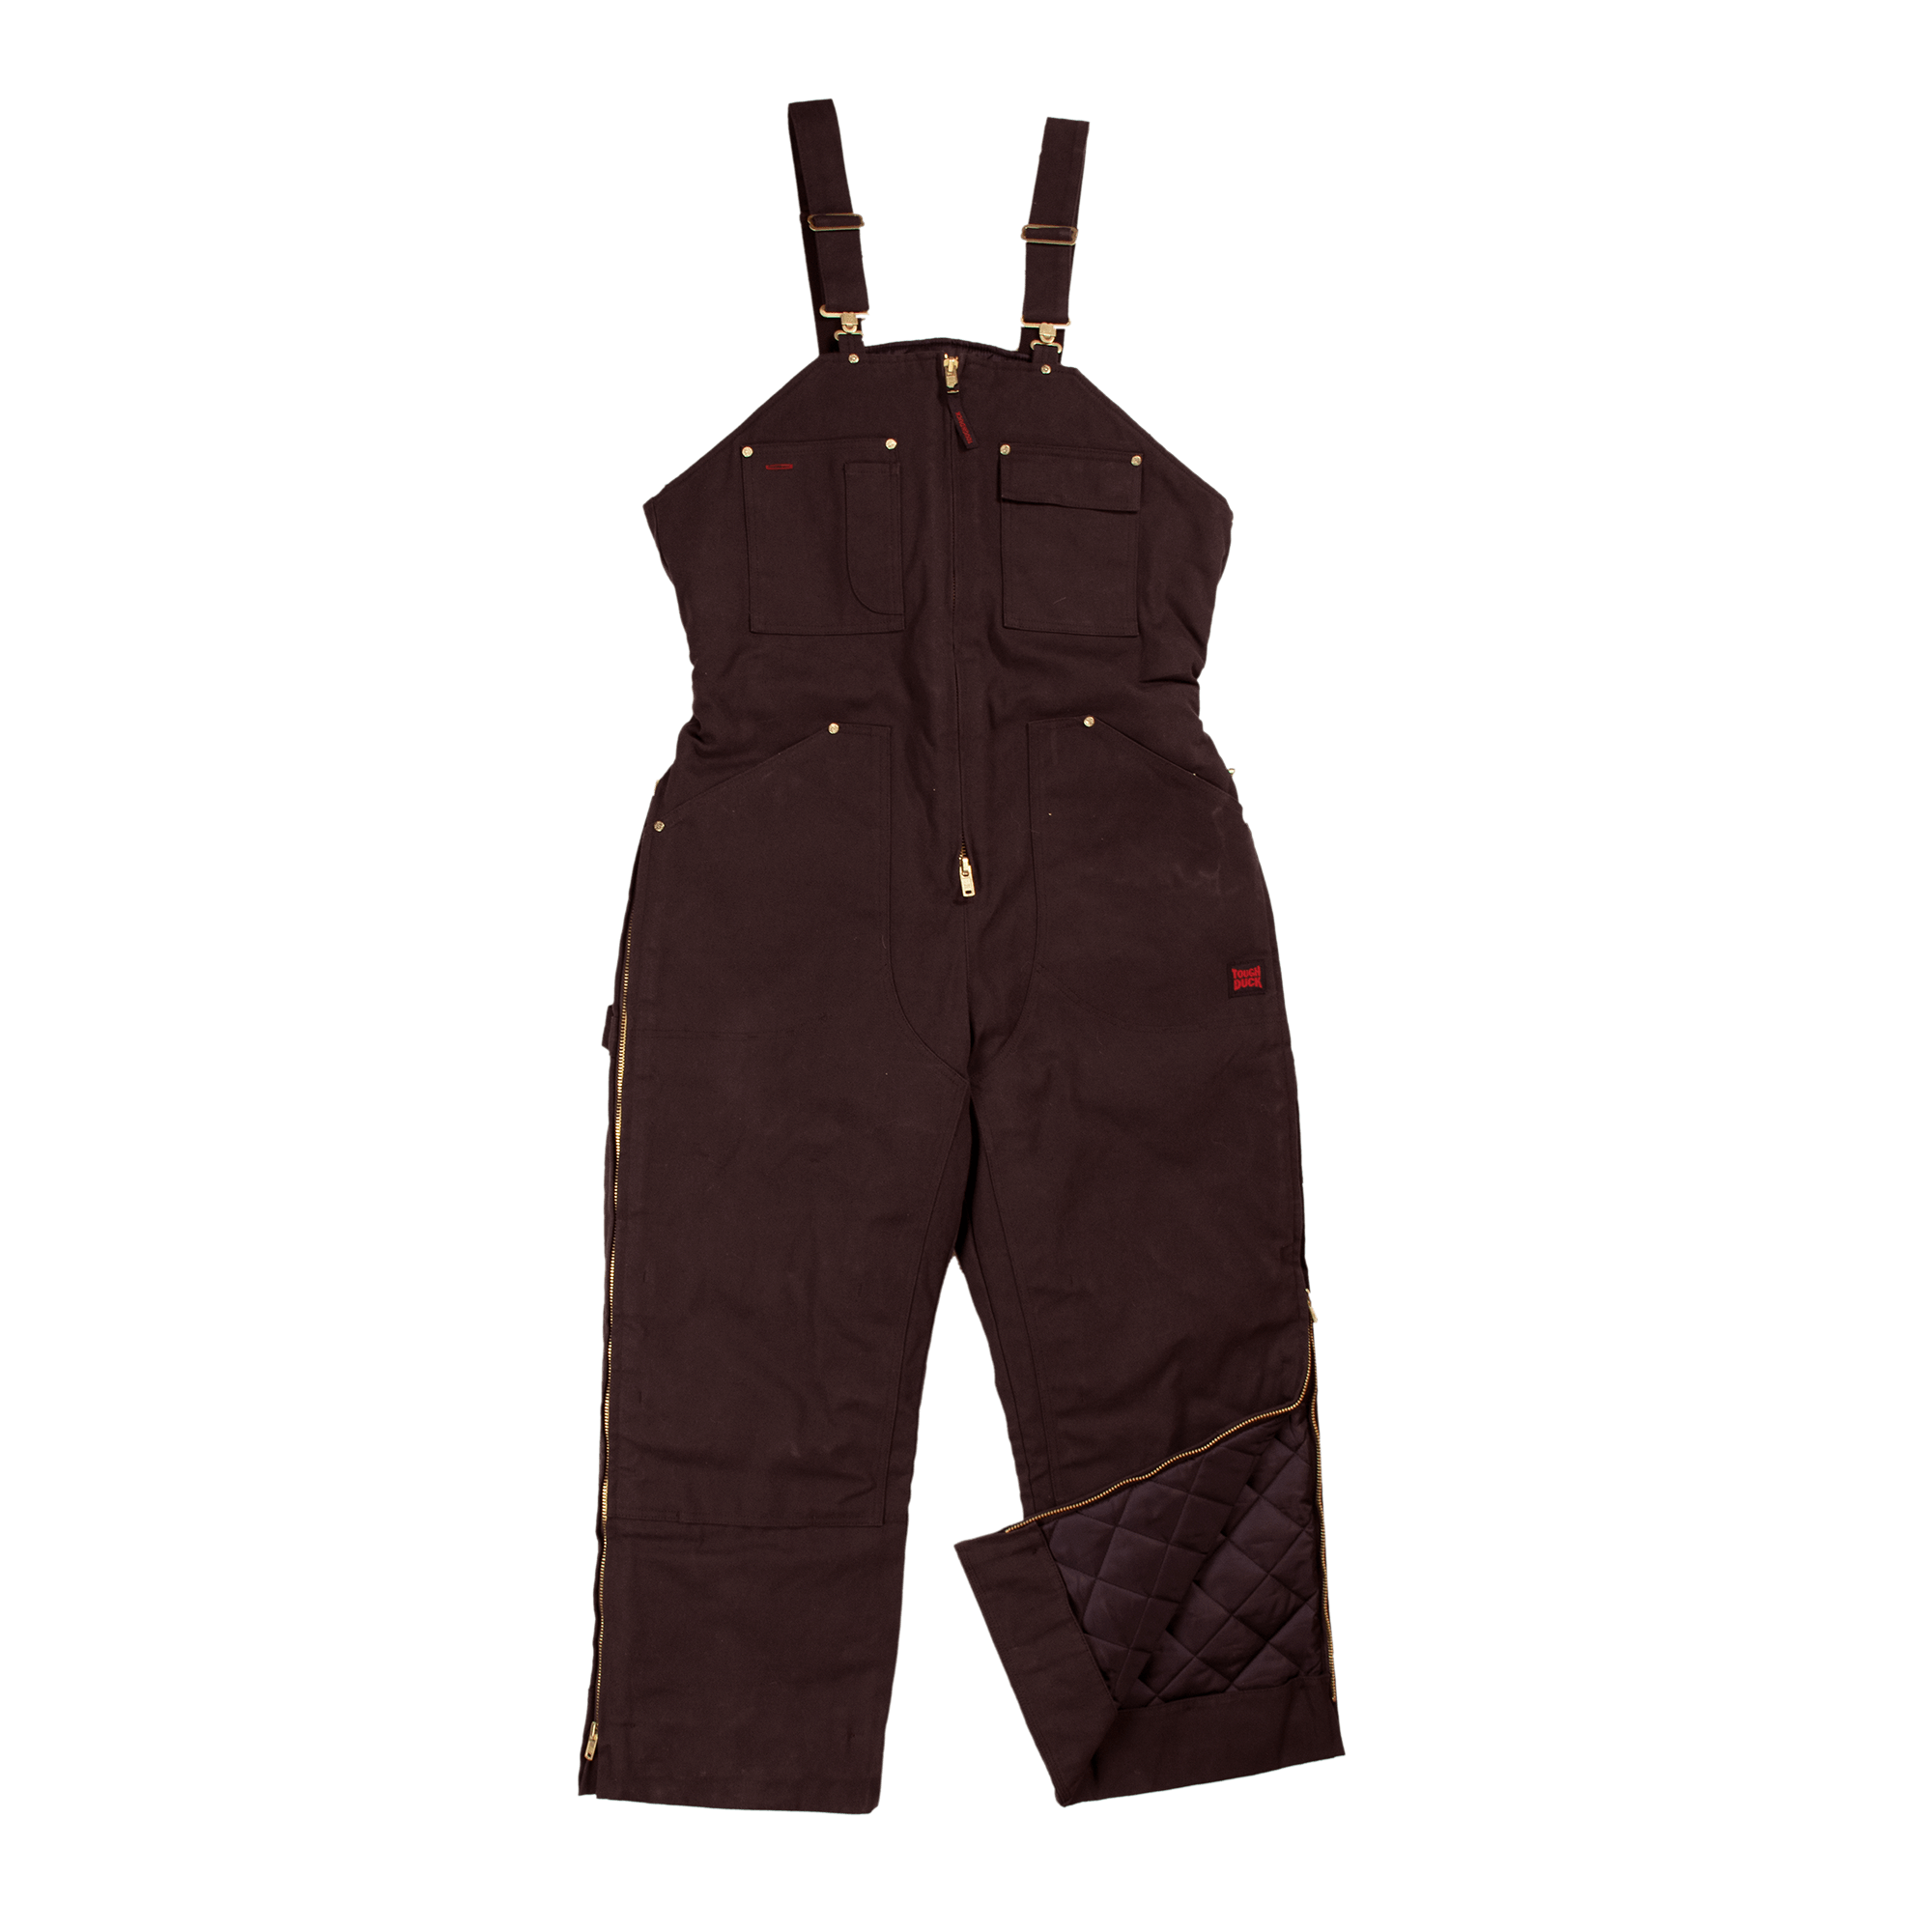 T.D Insulated Bib Overall